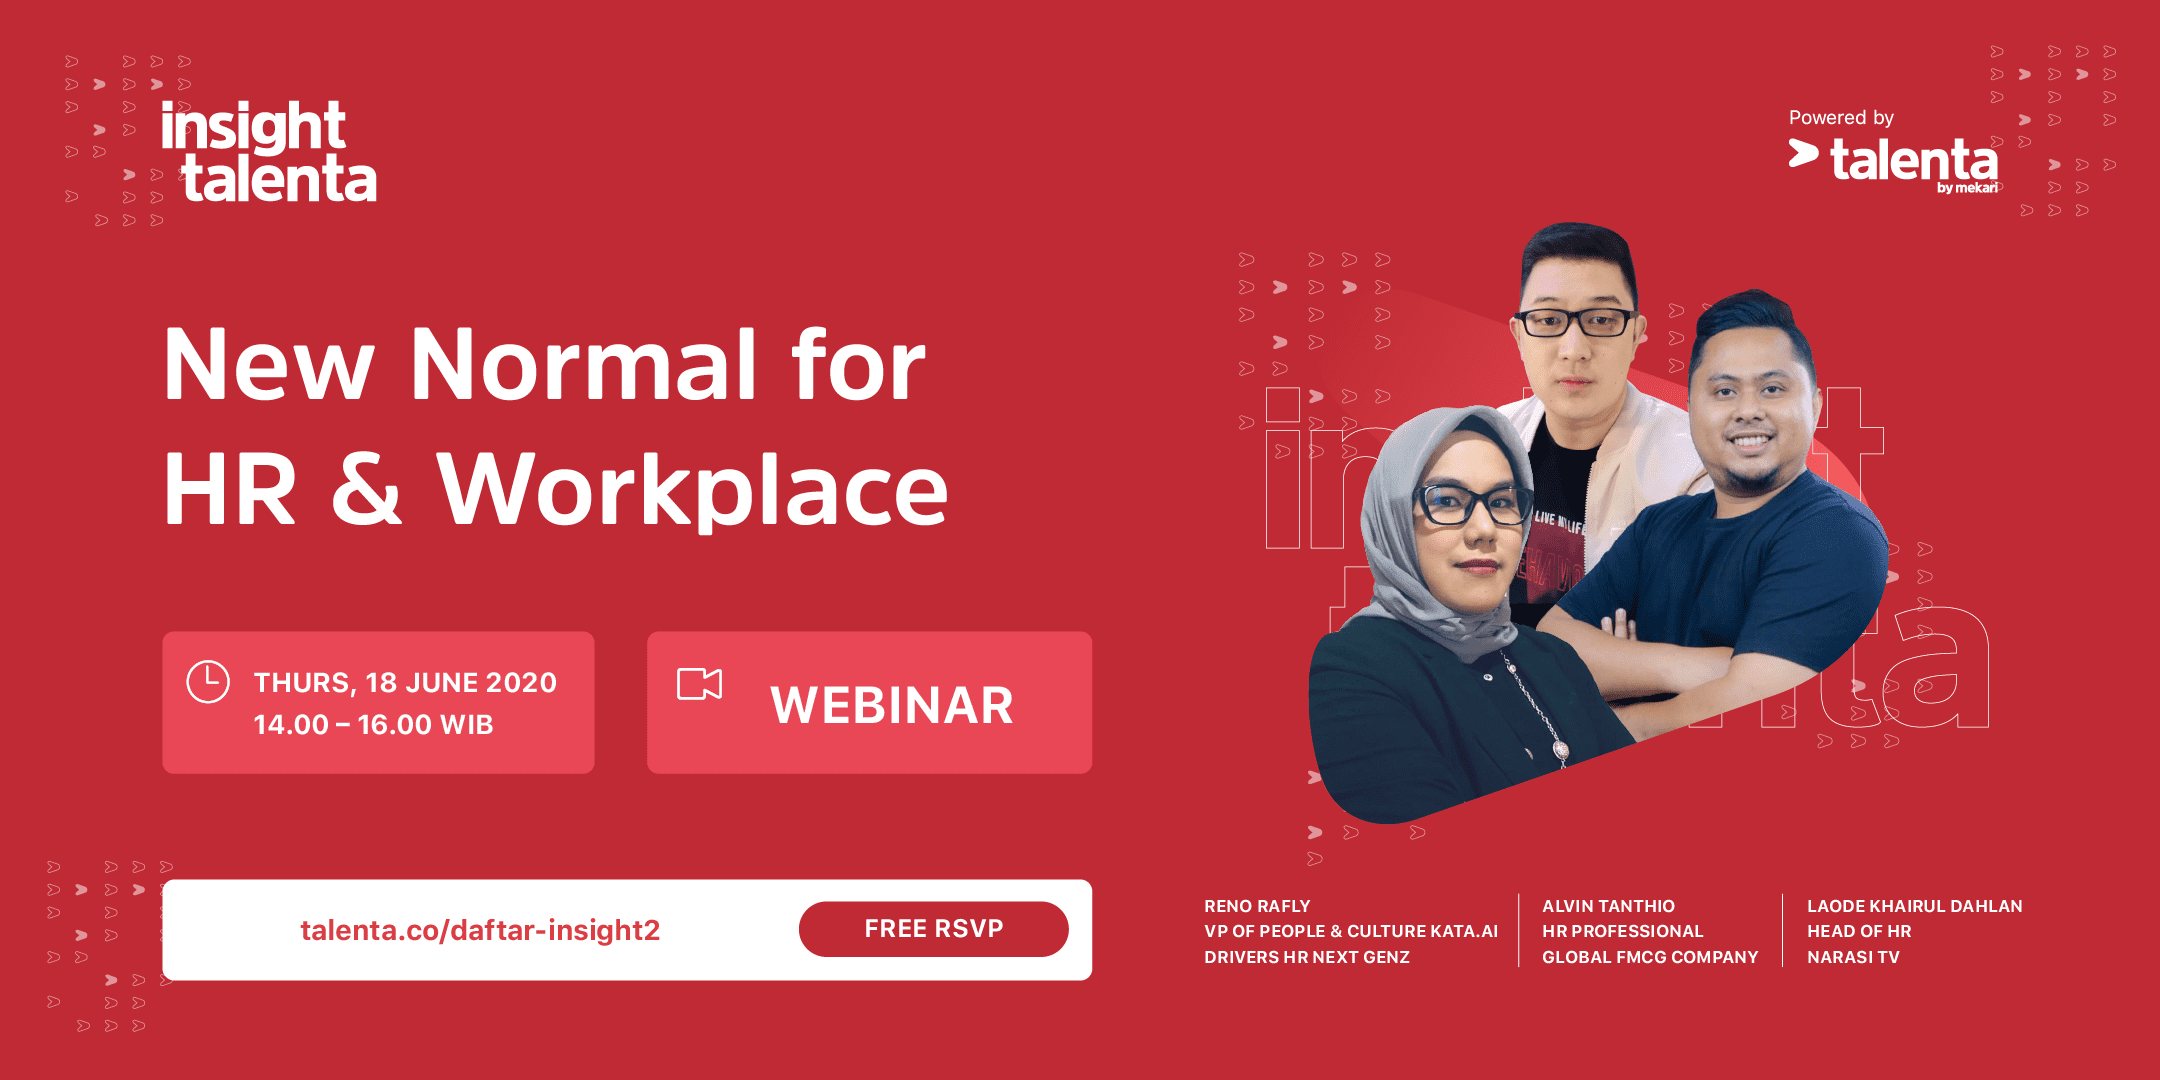 Insight Talenta – New Normal for HR & Workplace